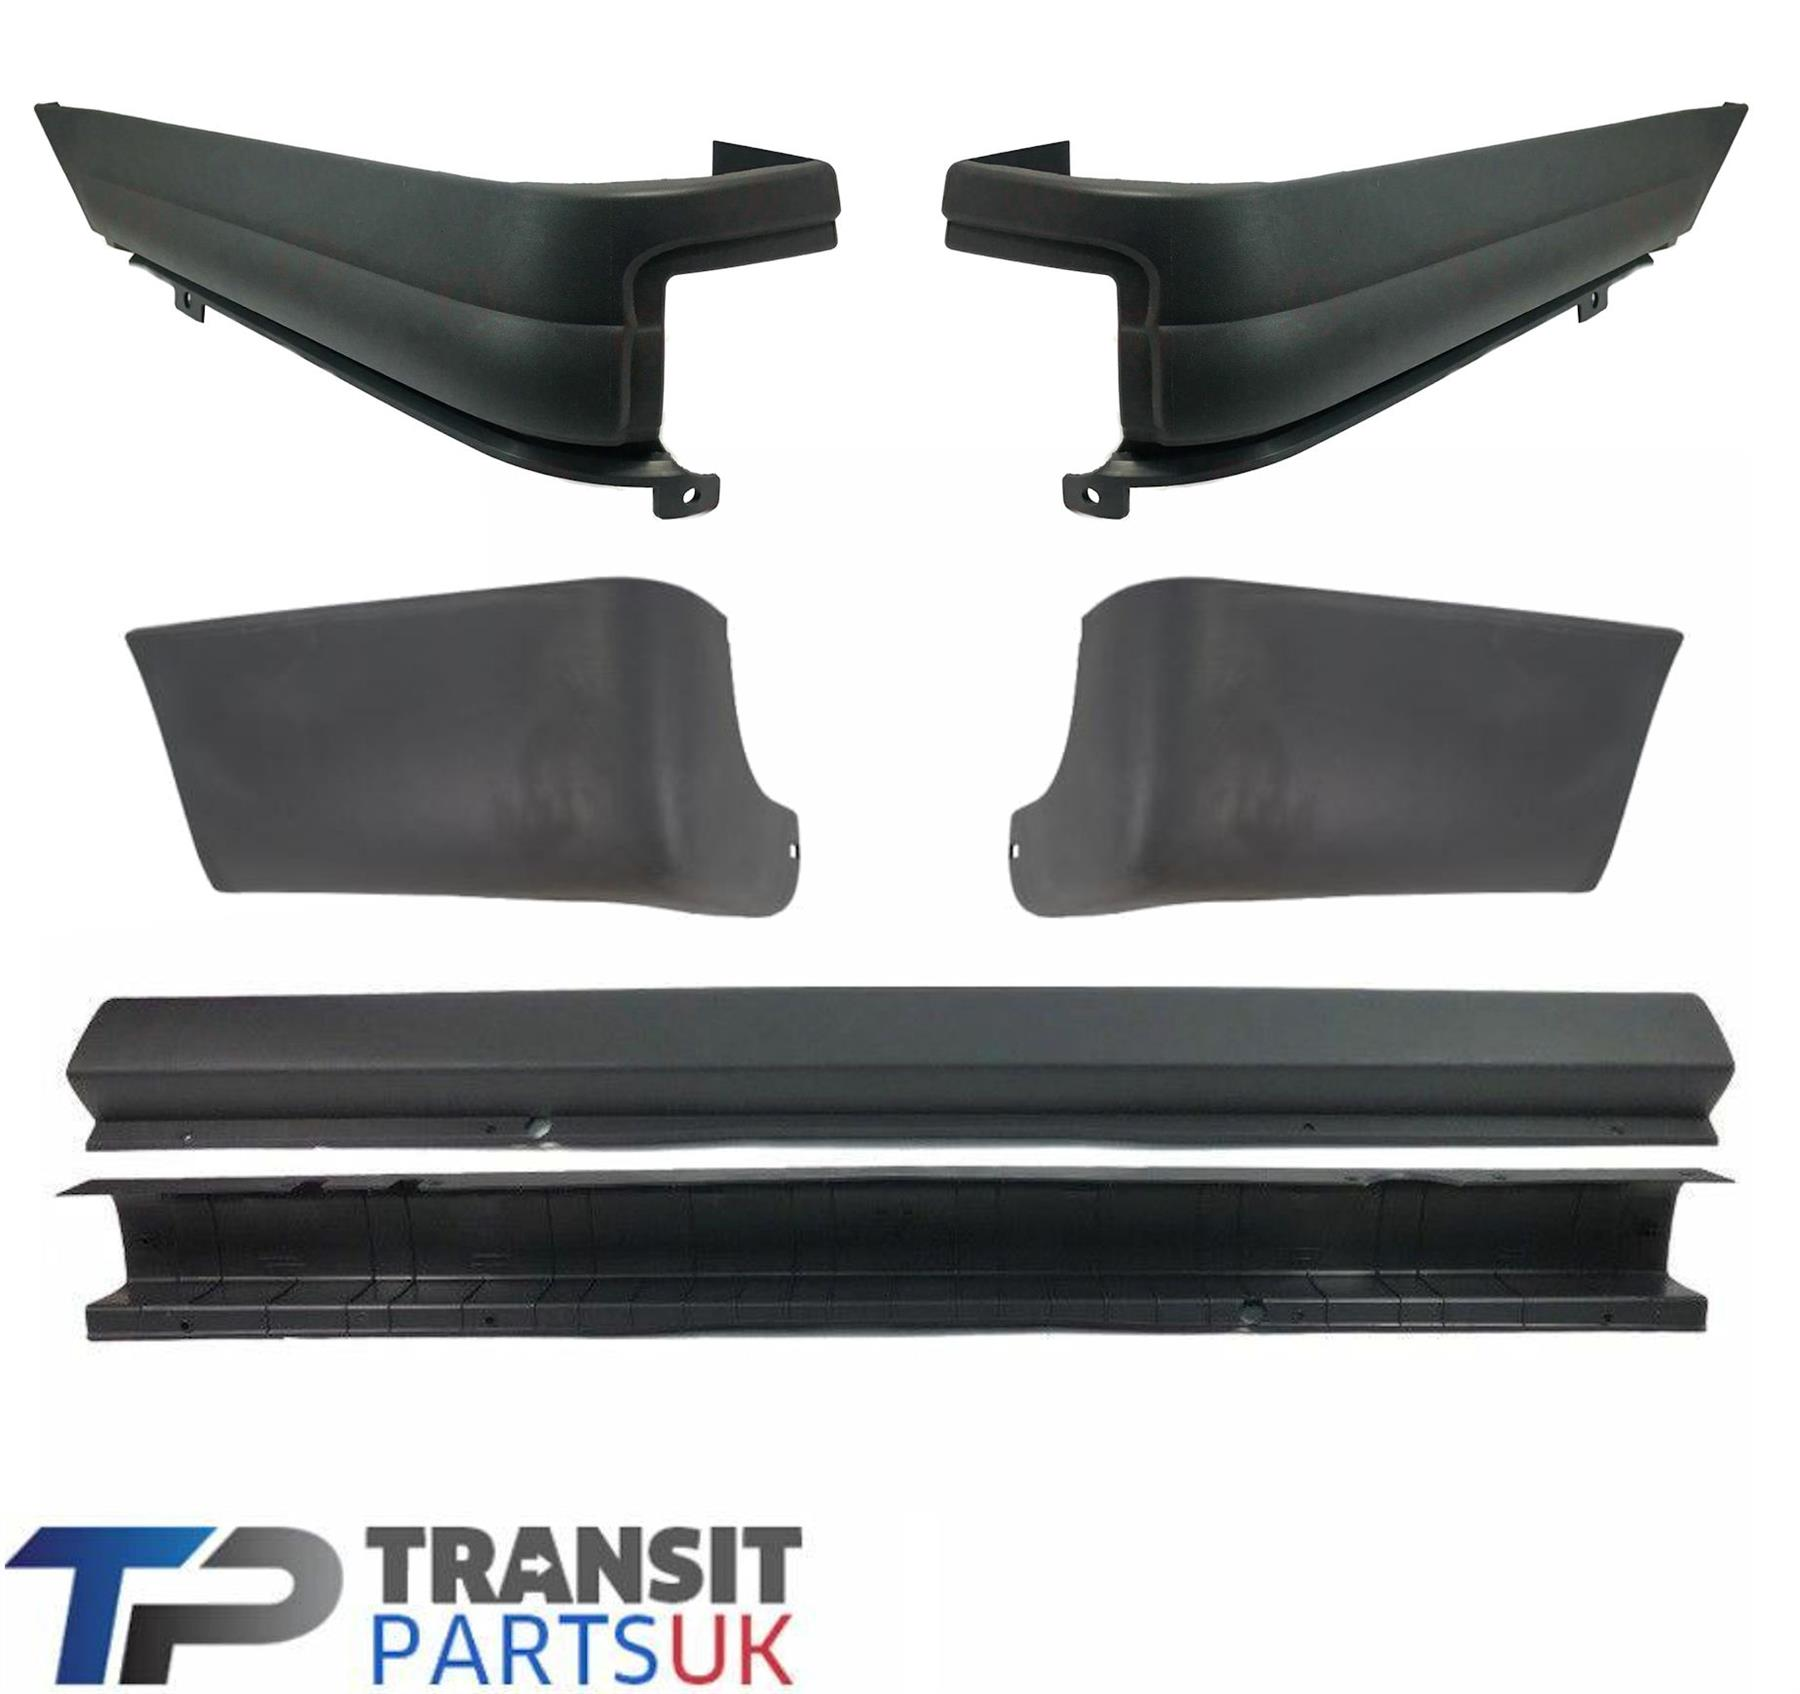 Ford Transit Connect MKI Pare-chocs arrière /& embouts /& Cover 2002-2013 Brand new O.E